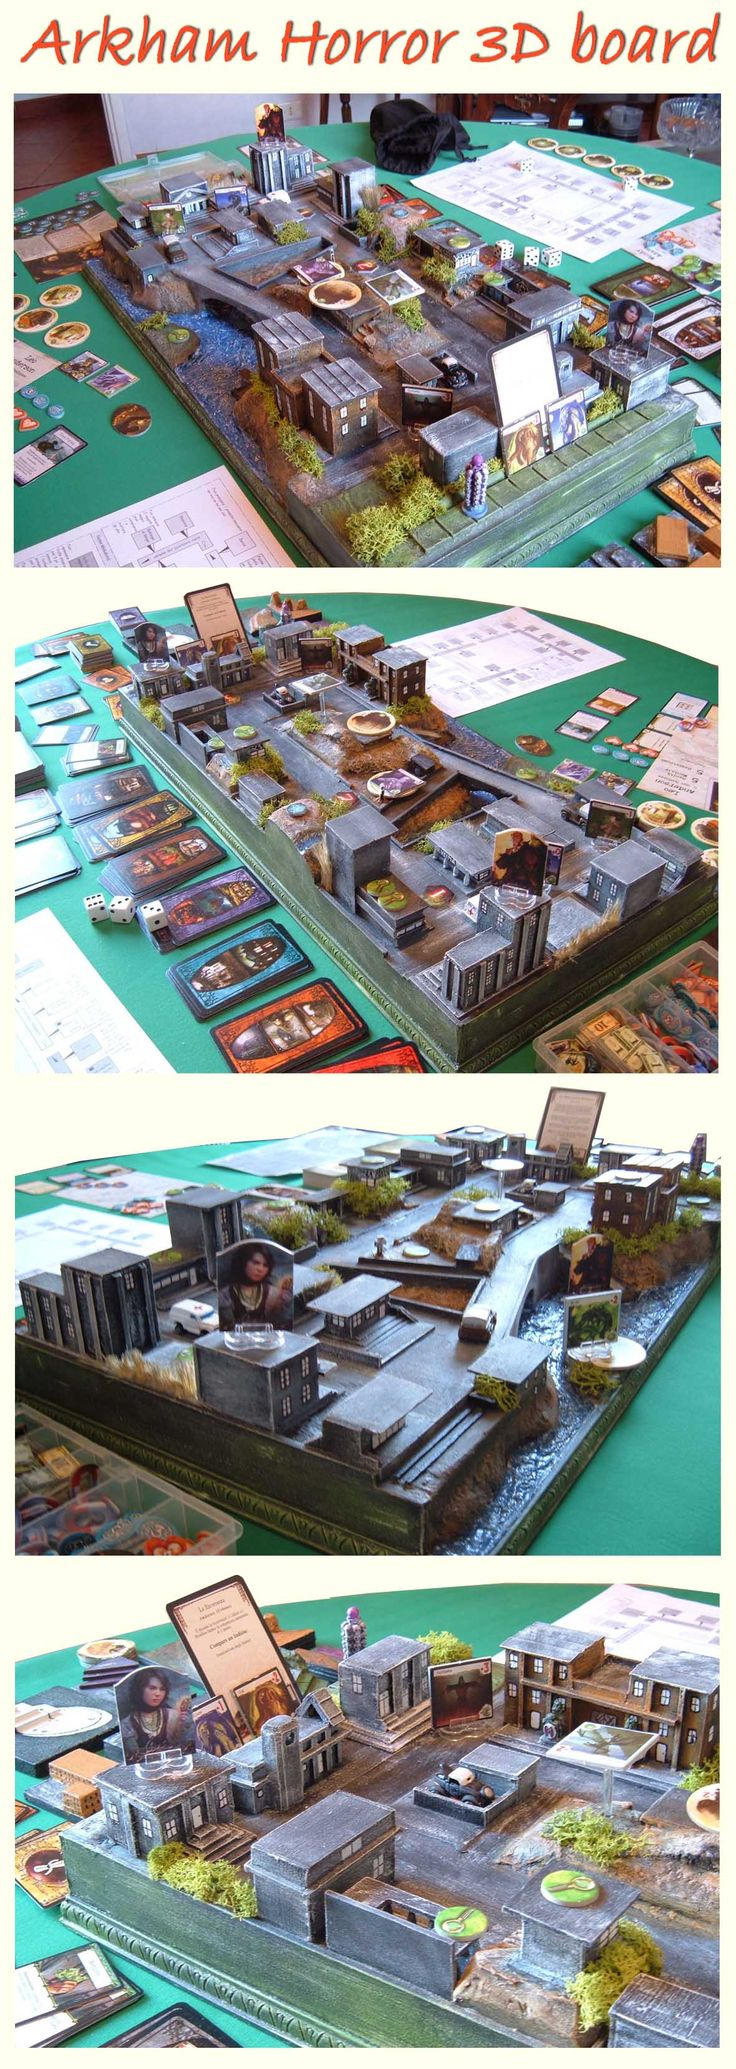 my model of Arkham Horror, 3D board, #Arkham #Horror #boardgame, #accessory. You want (250€+shipping) contact me enricodiblasio@gmail.com